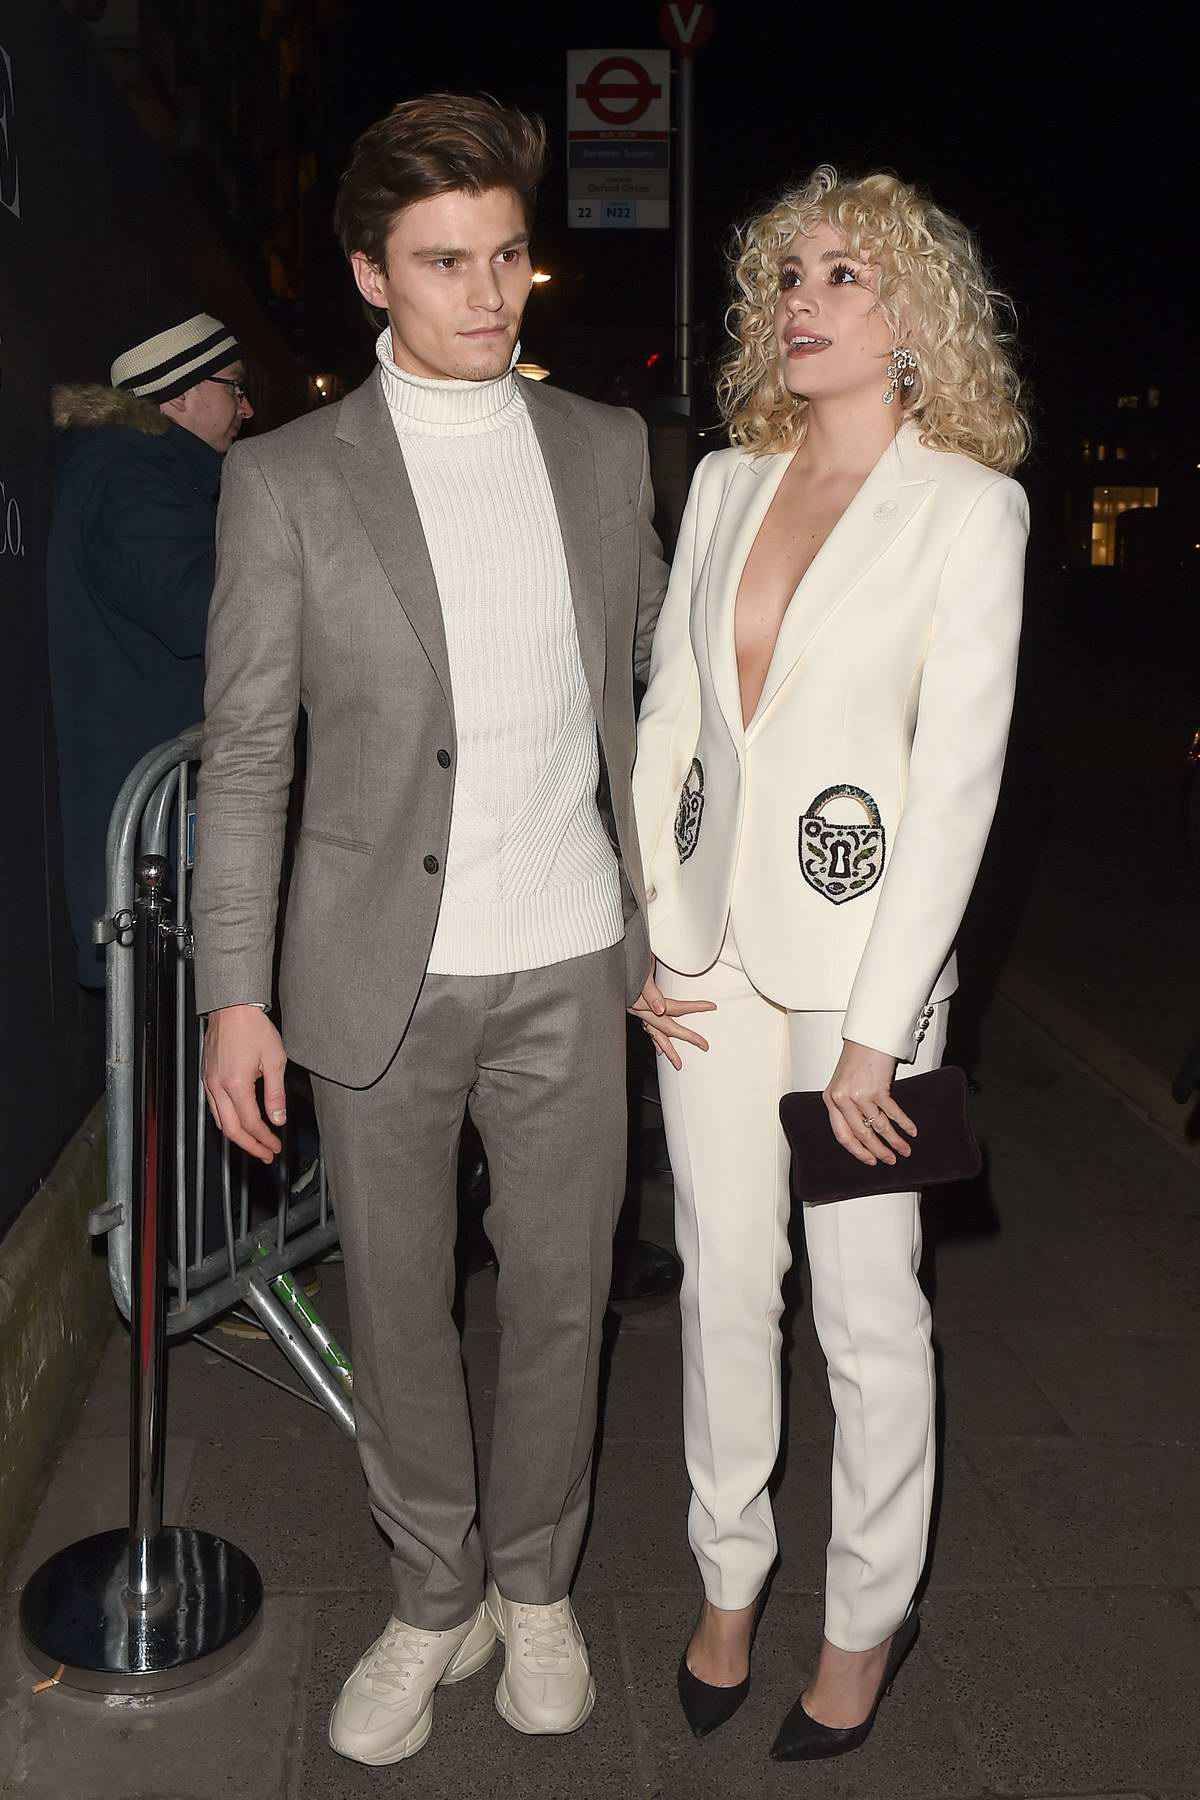 Pixie Lott attend the Vogue x Tiffany & Co BAFTA after-party, held at Annabel's Private Members Club in Mayfair, London